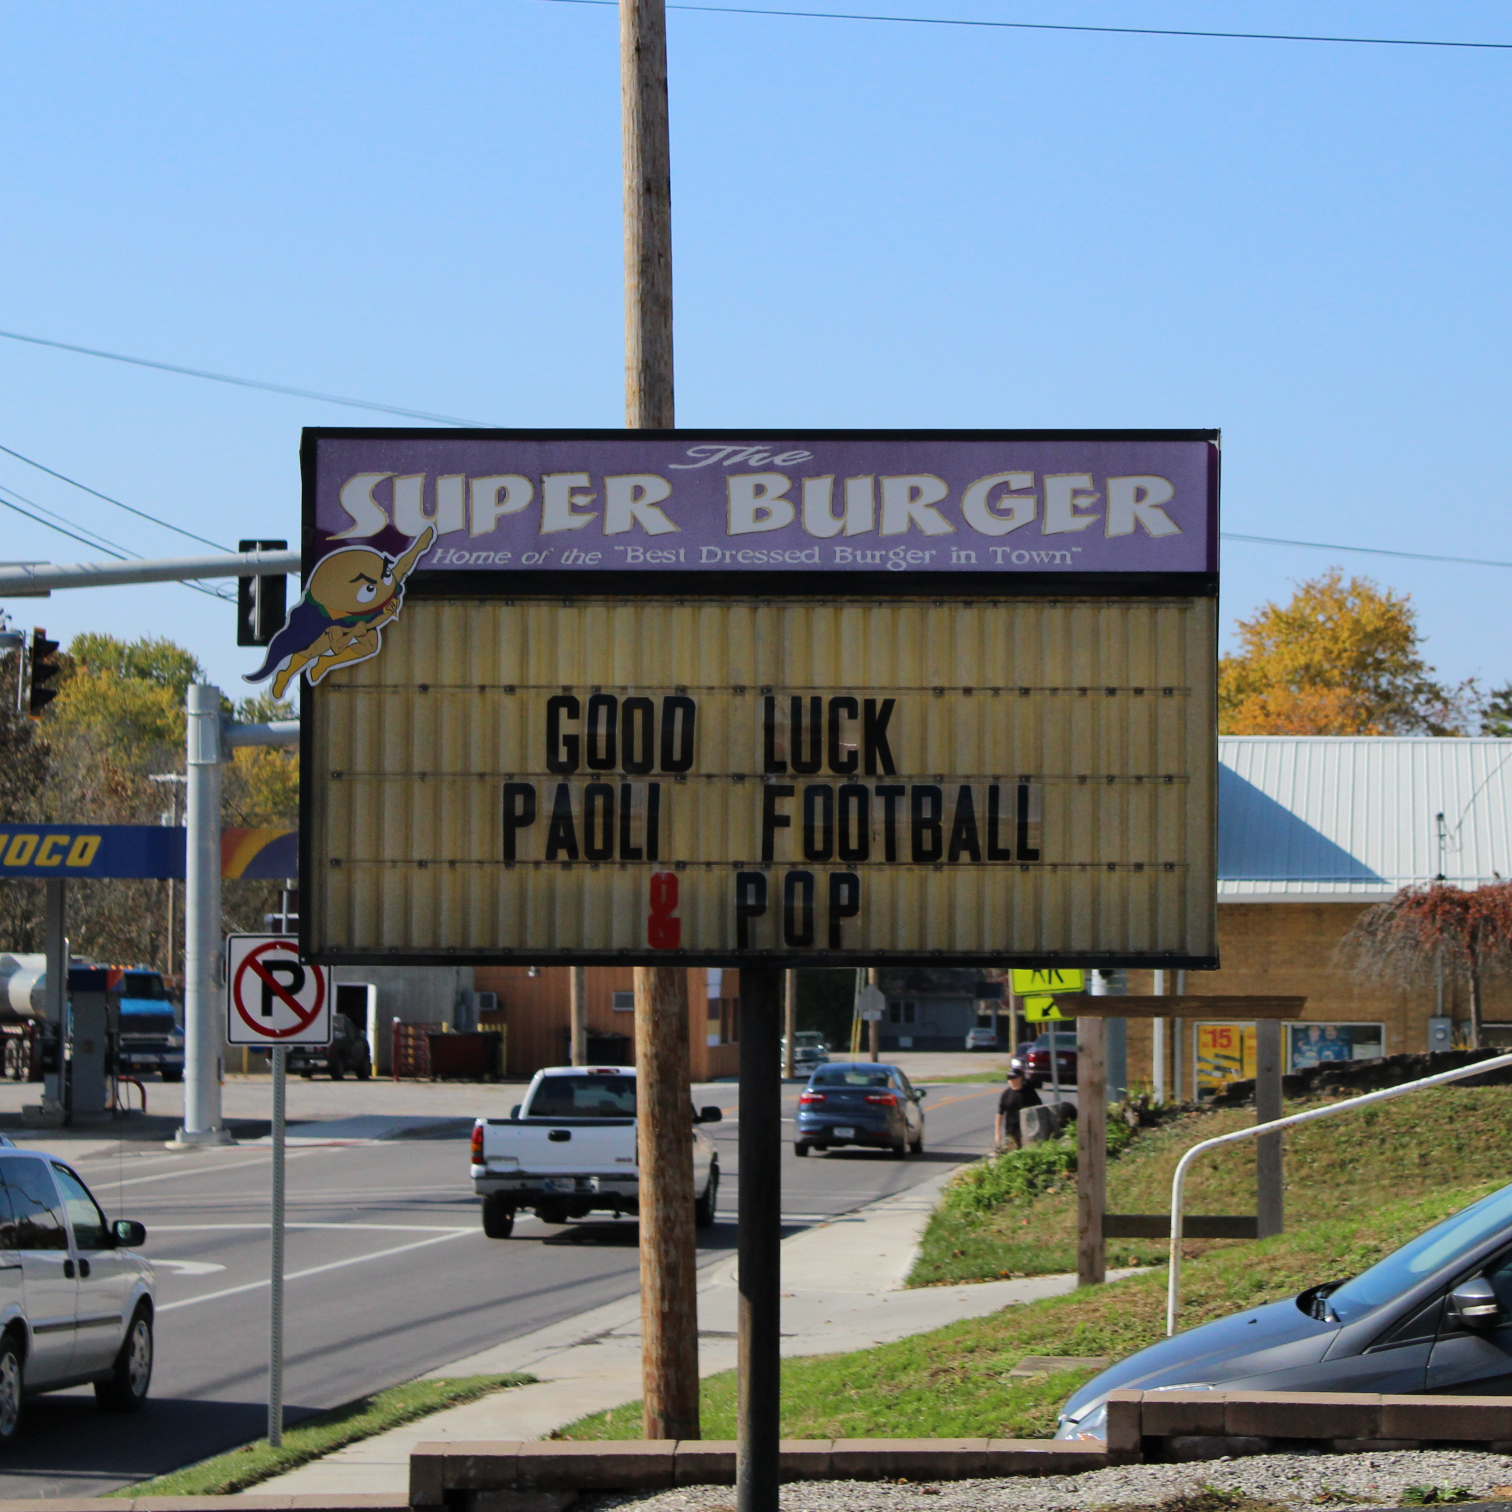 Super Burger wishes the band good luck.